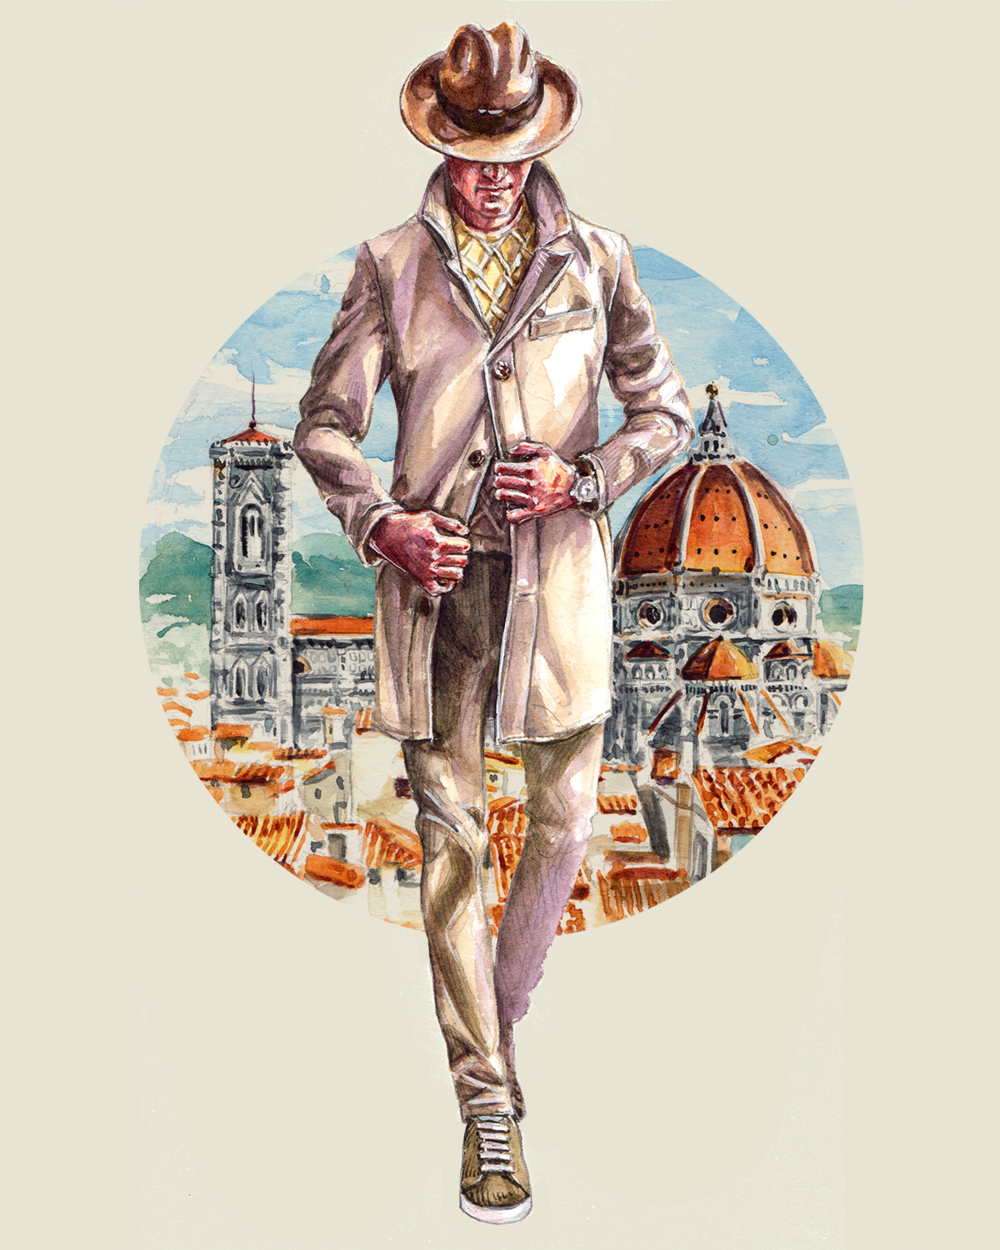 Luciano Barbera - Pitti Uomo 92 Promo Illustration